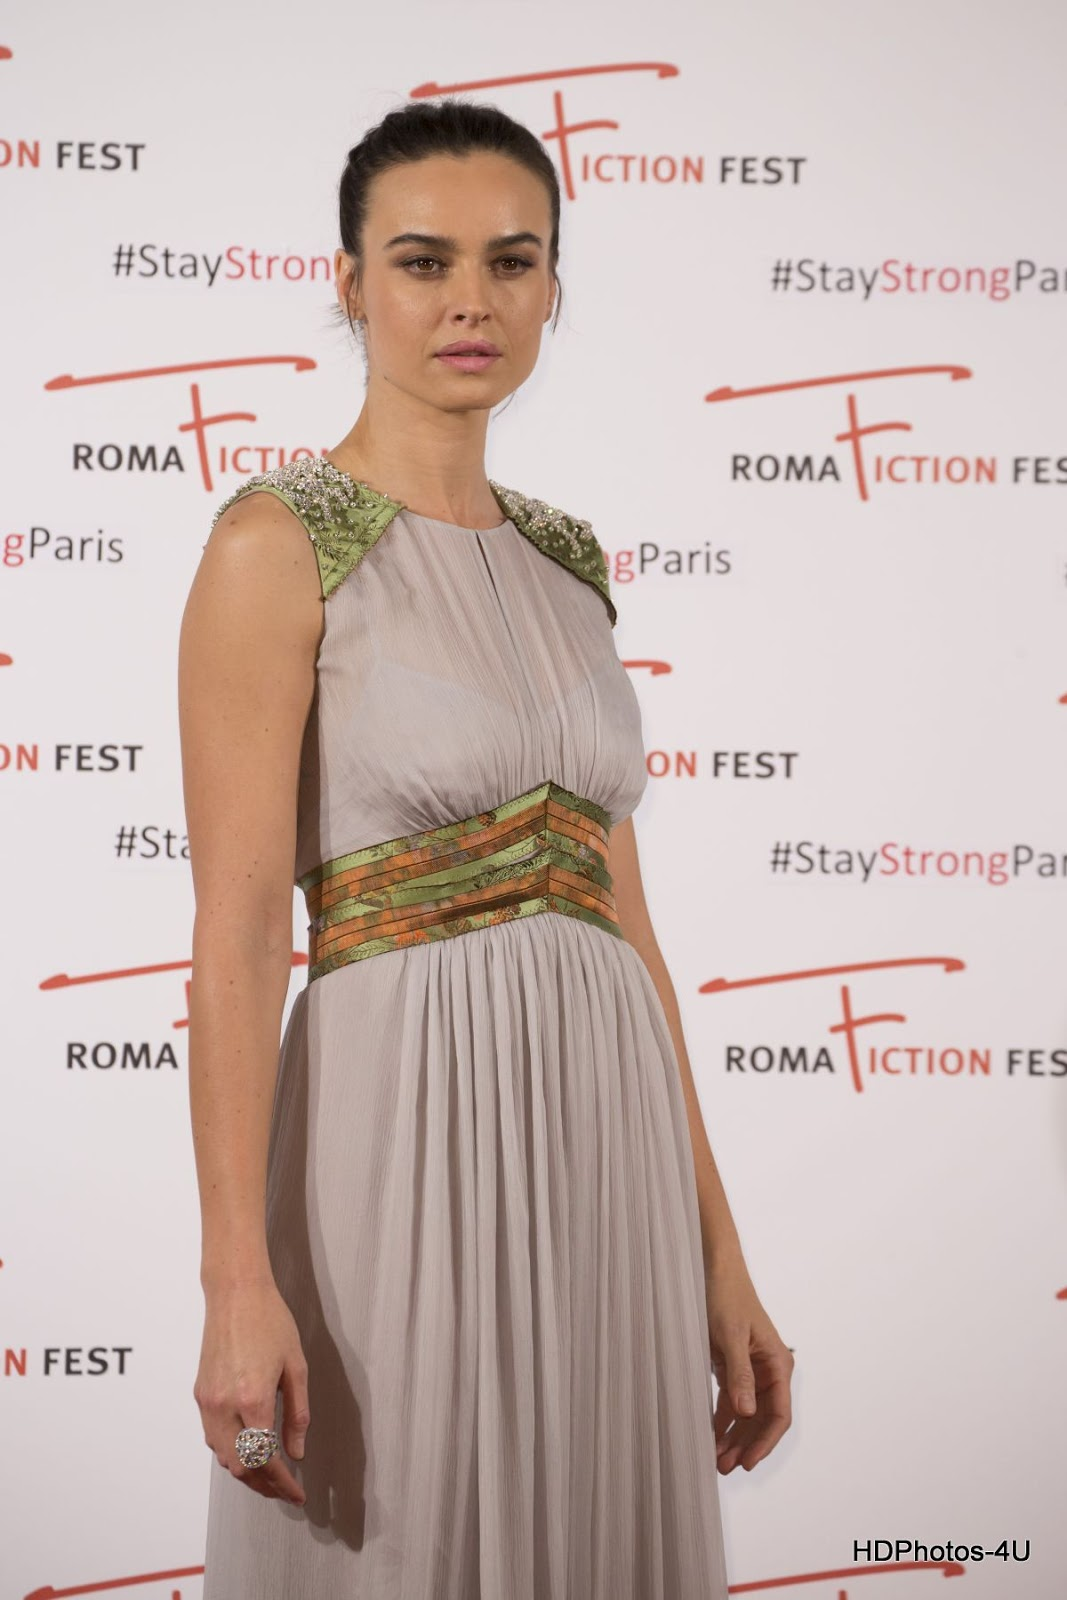 'Perfect Strangers' actress HQ Photos of Kasia Smutniak At 9th Roma Fiction Fest Limbo Red Carpet At Cinema Adriano In Rome